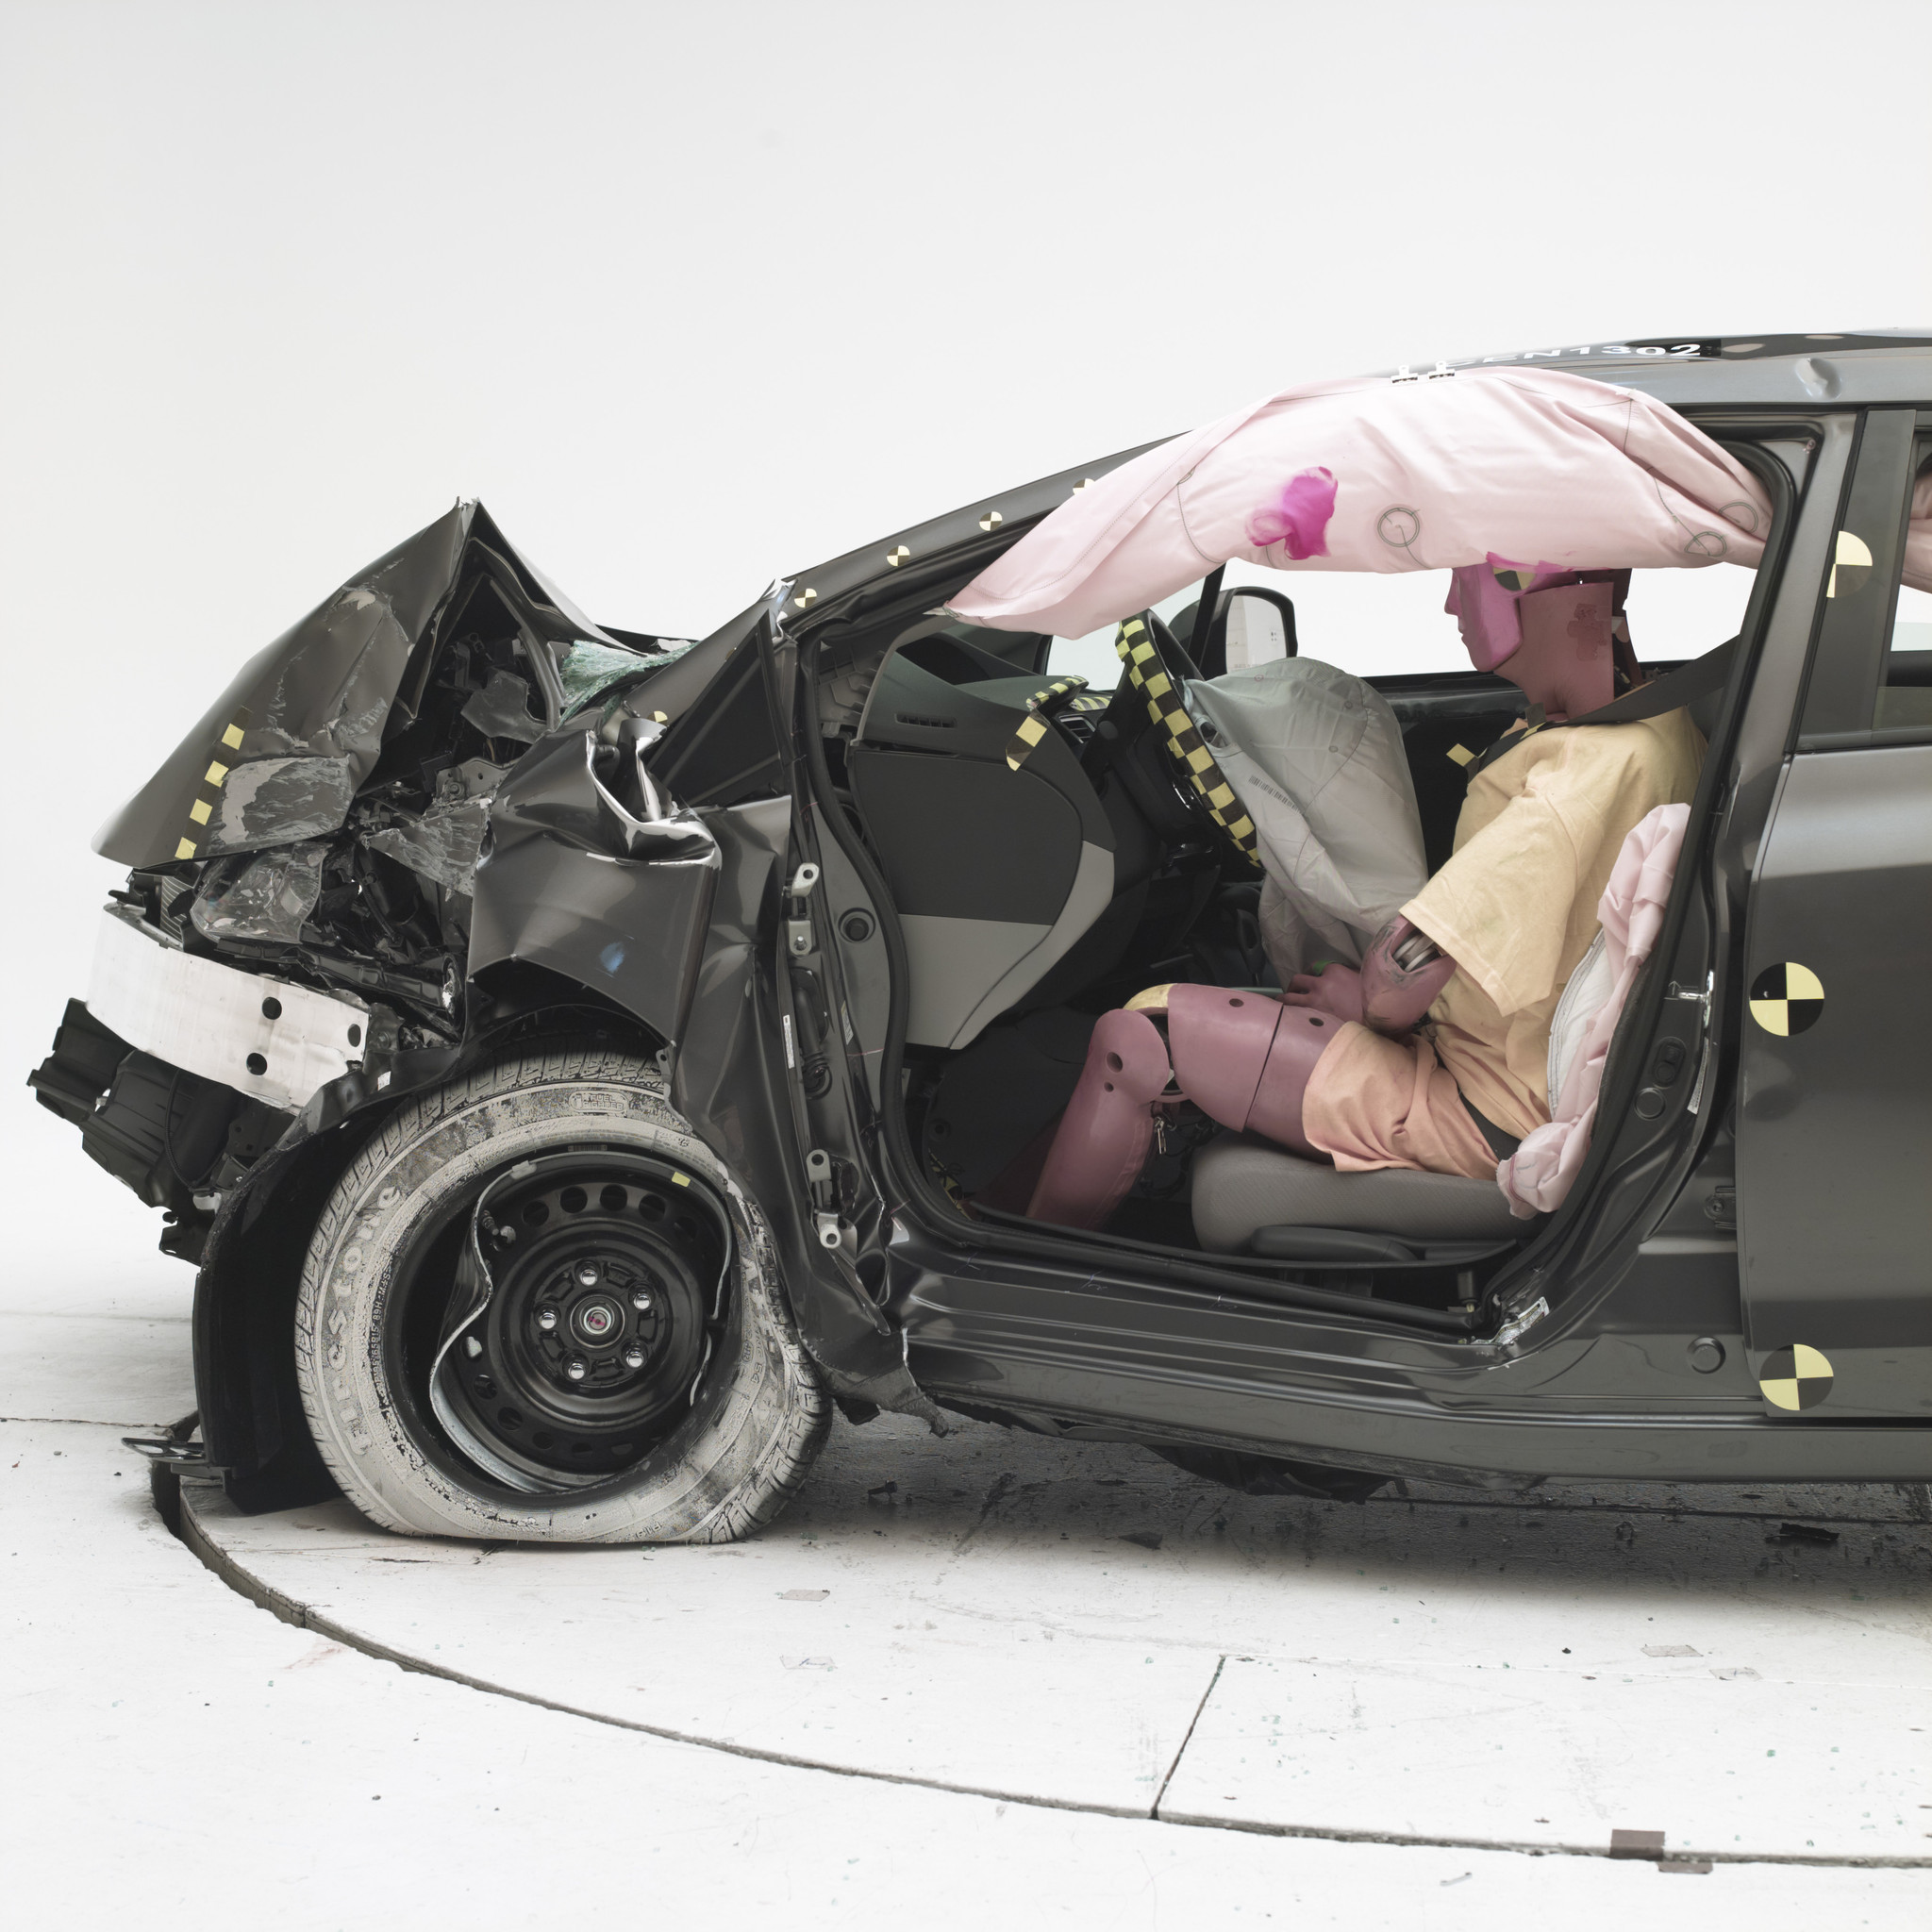 Cars After Crash Test